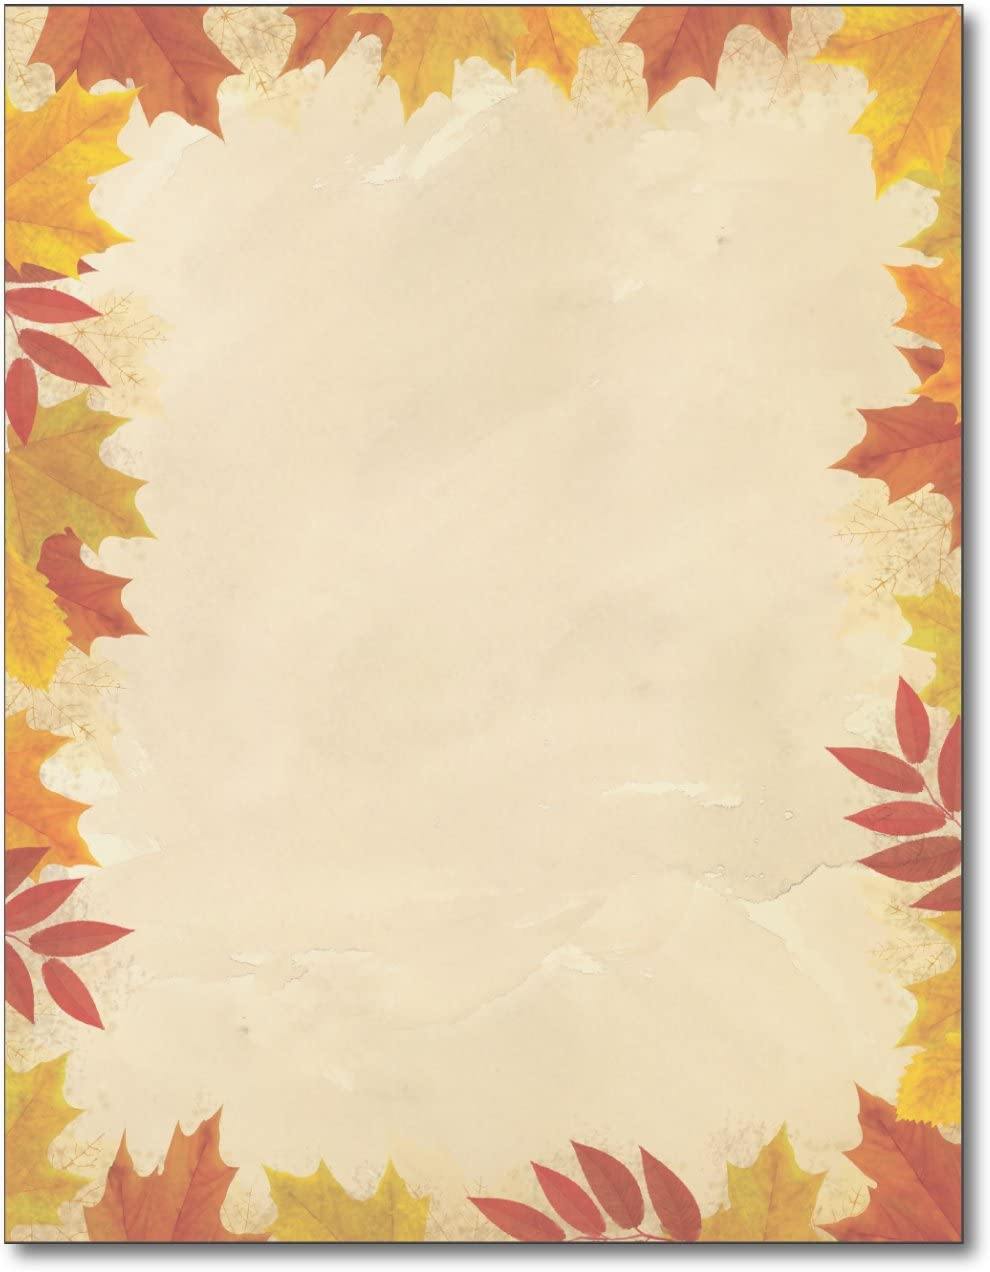 Autumn Leaves Border Stationery - 80 Sheets